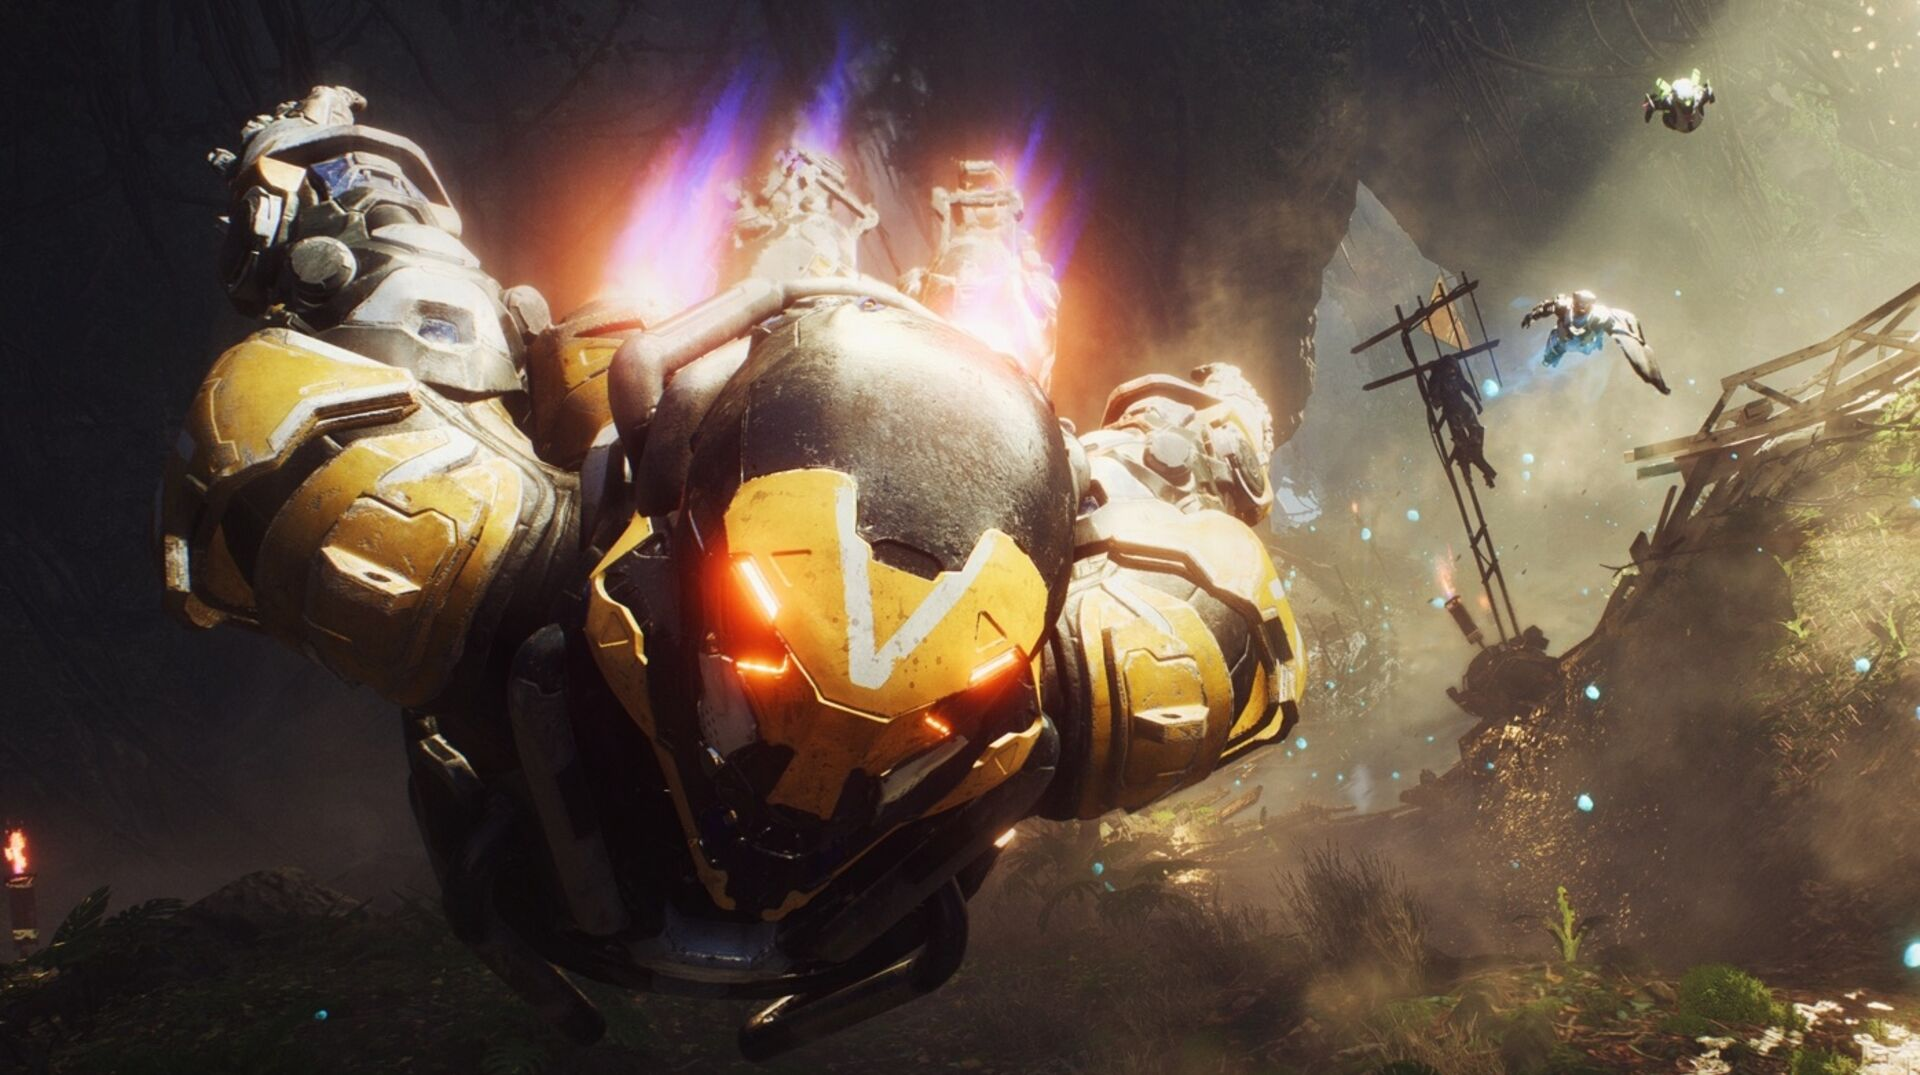 All EA games affected as publisher's server network struggles amid